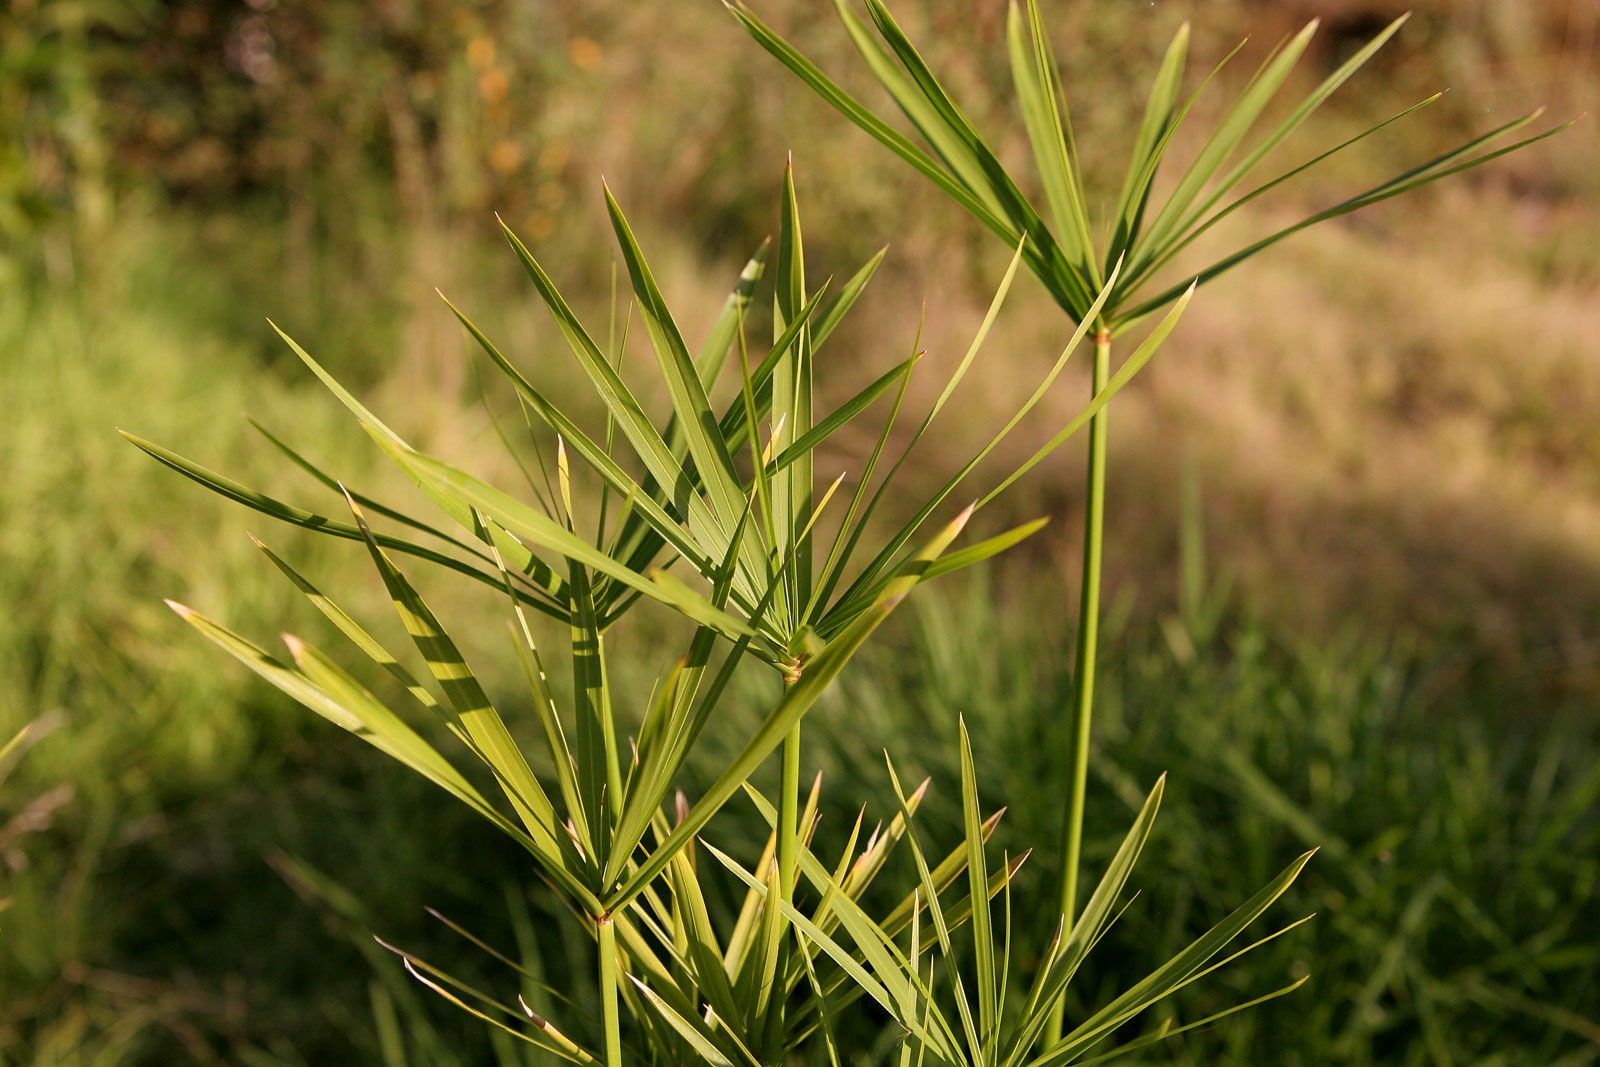 File:Papyrus plant.jpg - Wikipedia, the free encyclopedia